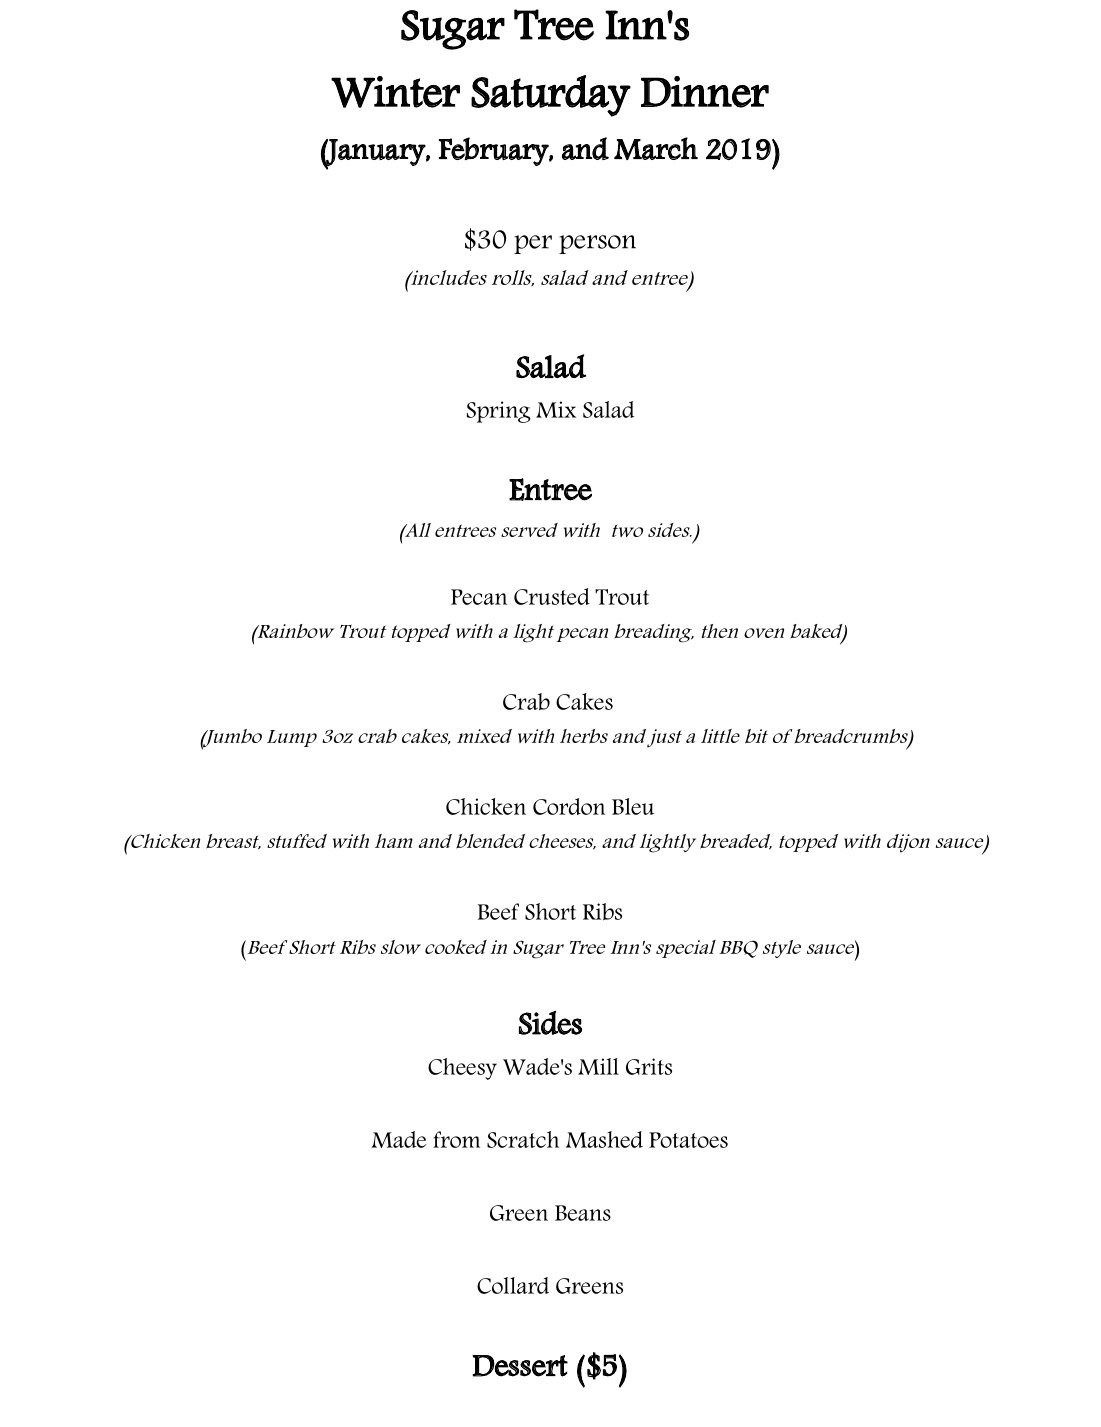 Sugar Tree Inn's Winter Weekend Menu